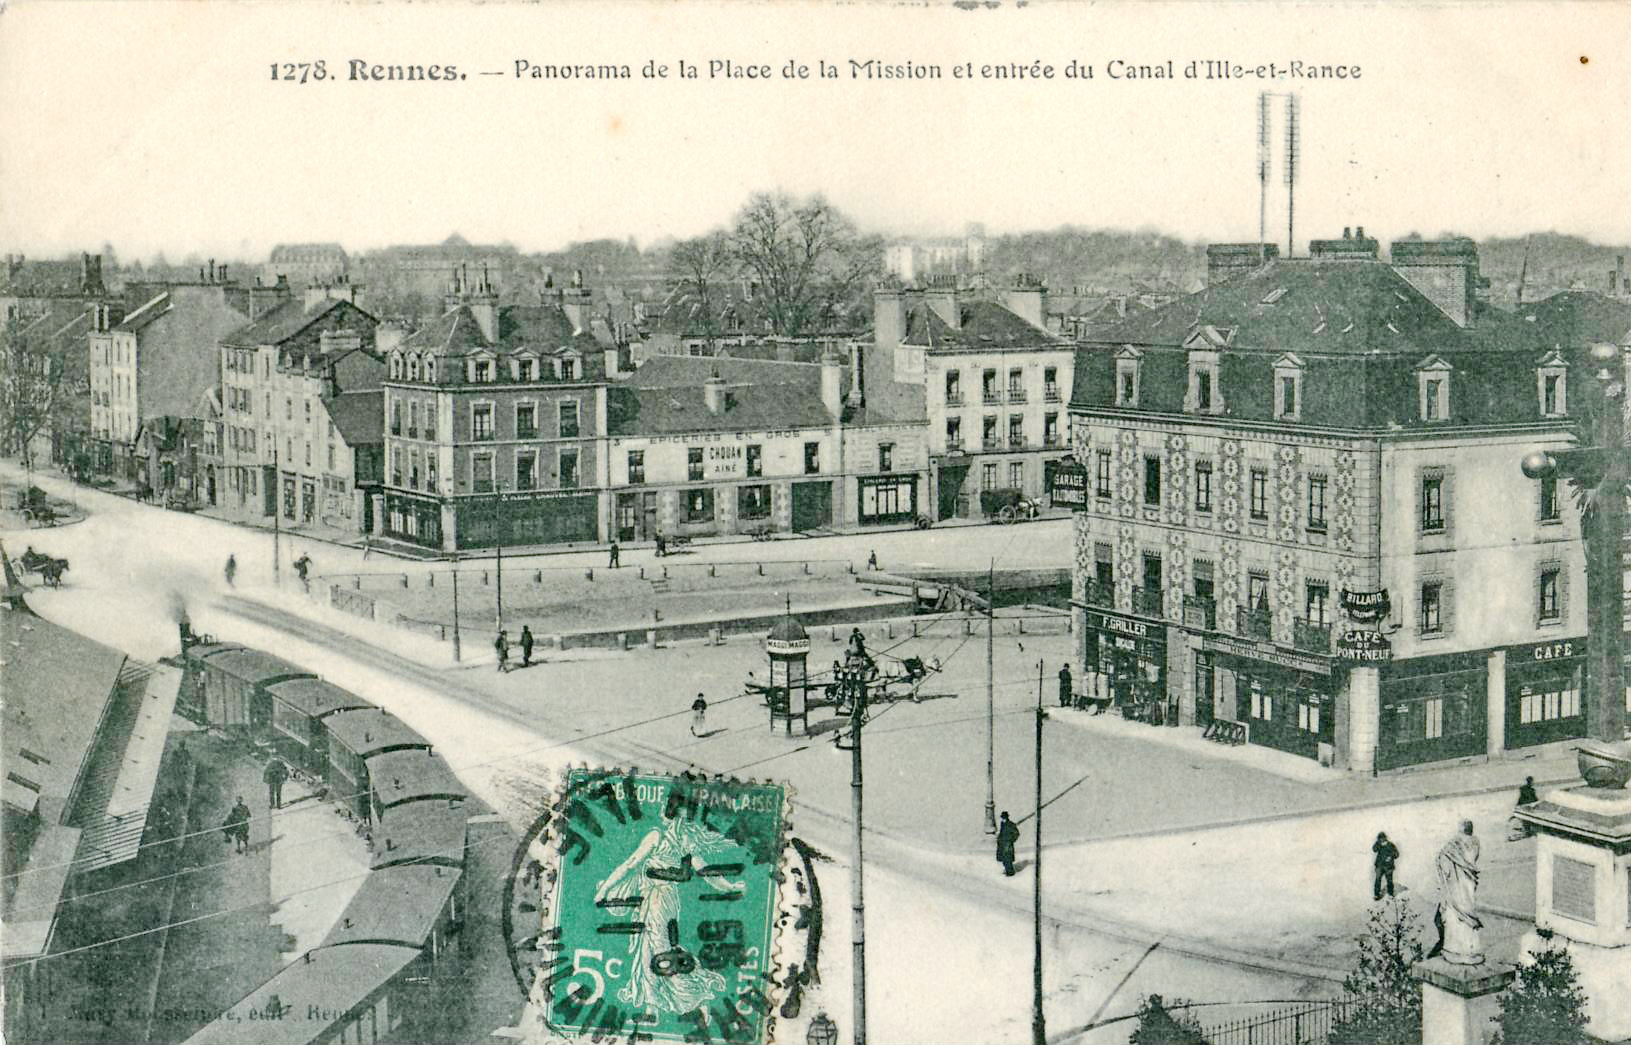 File:Mary-Rousselière 1278 - RENNES - Panorama de la Place de la Mission